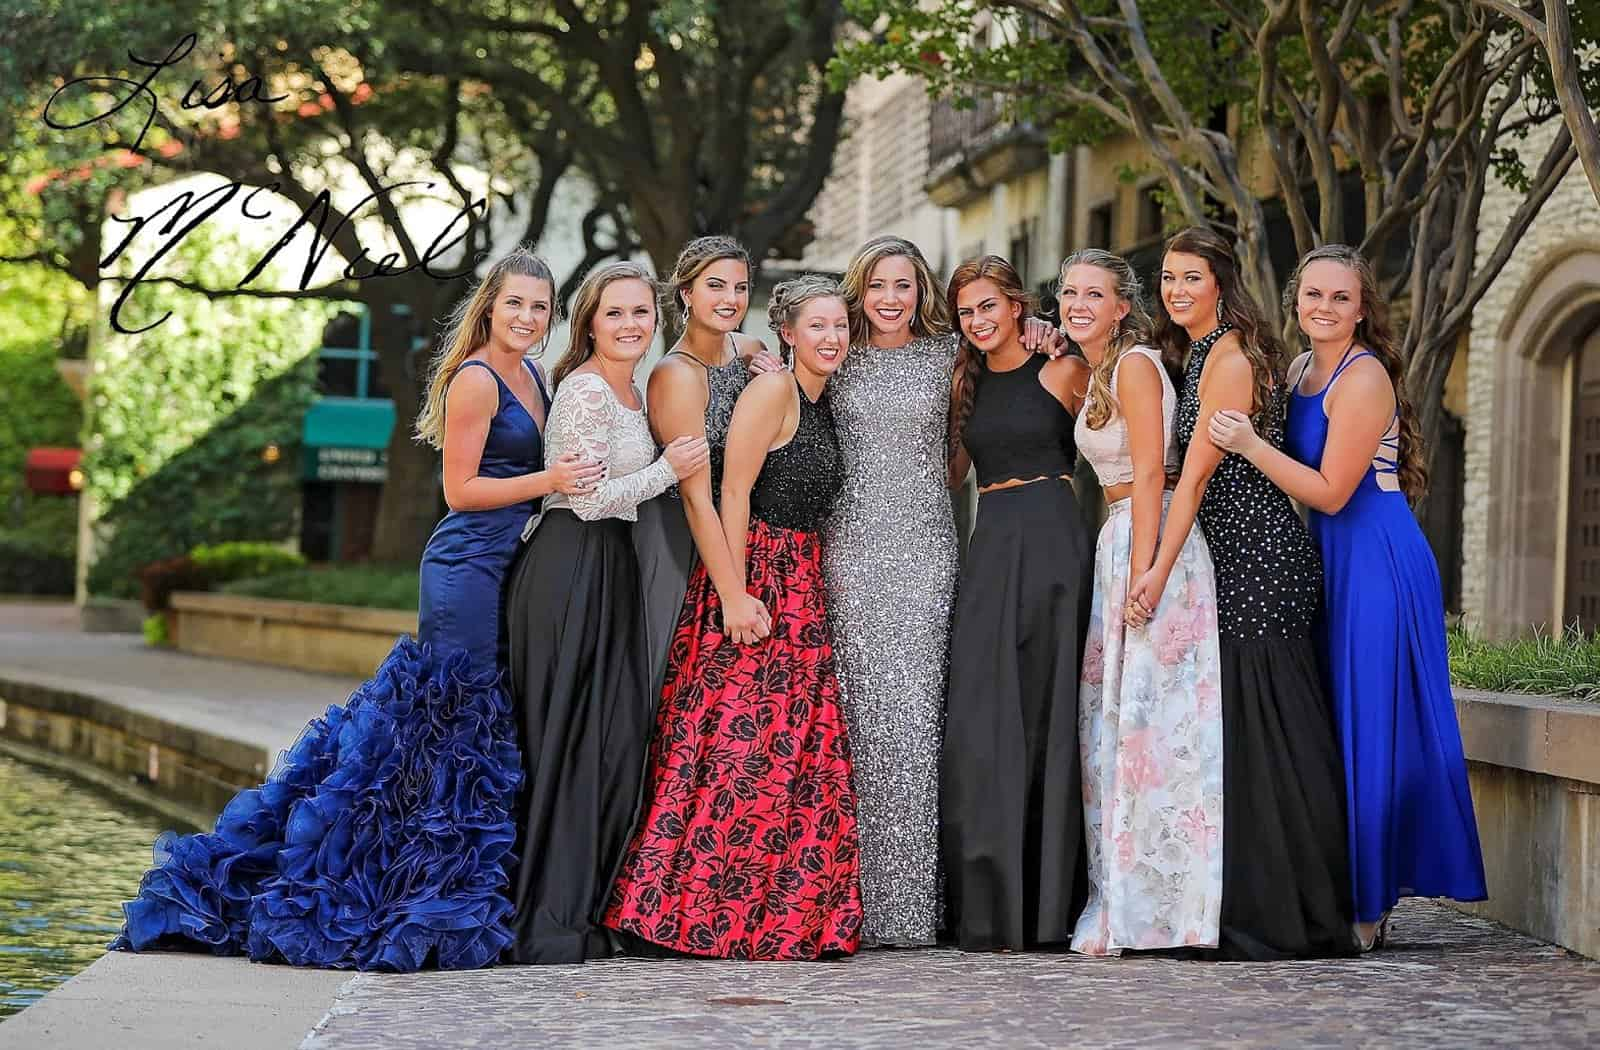 Amazing Prom <span>Limousines in Orlando</span>